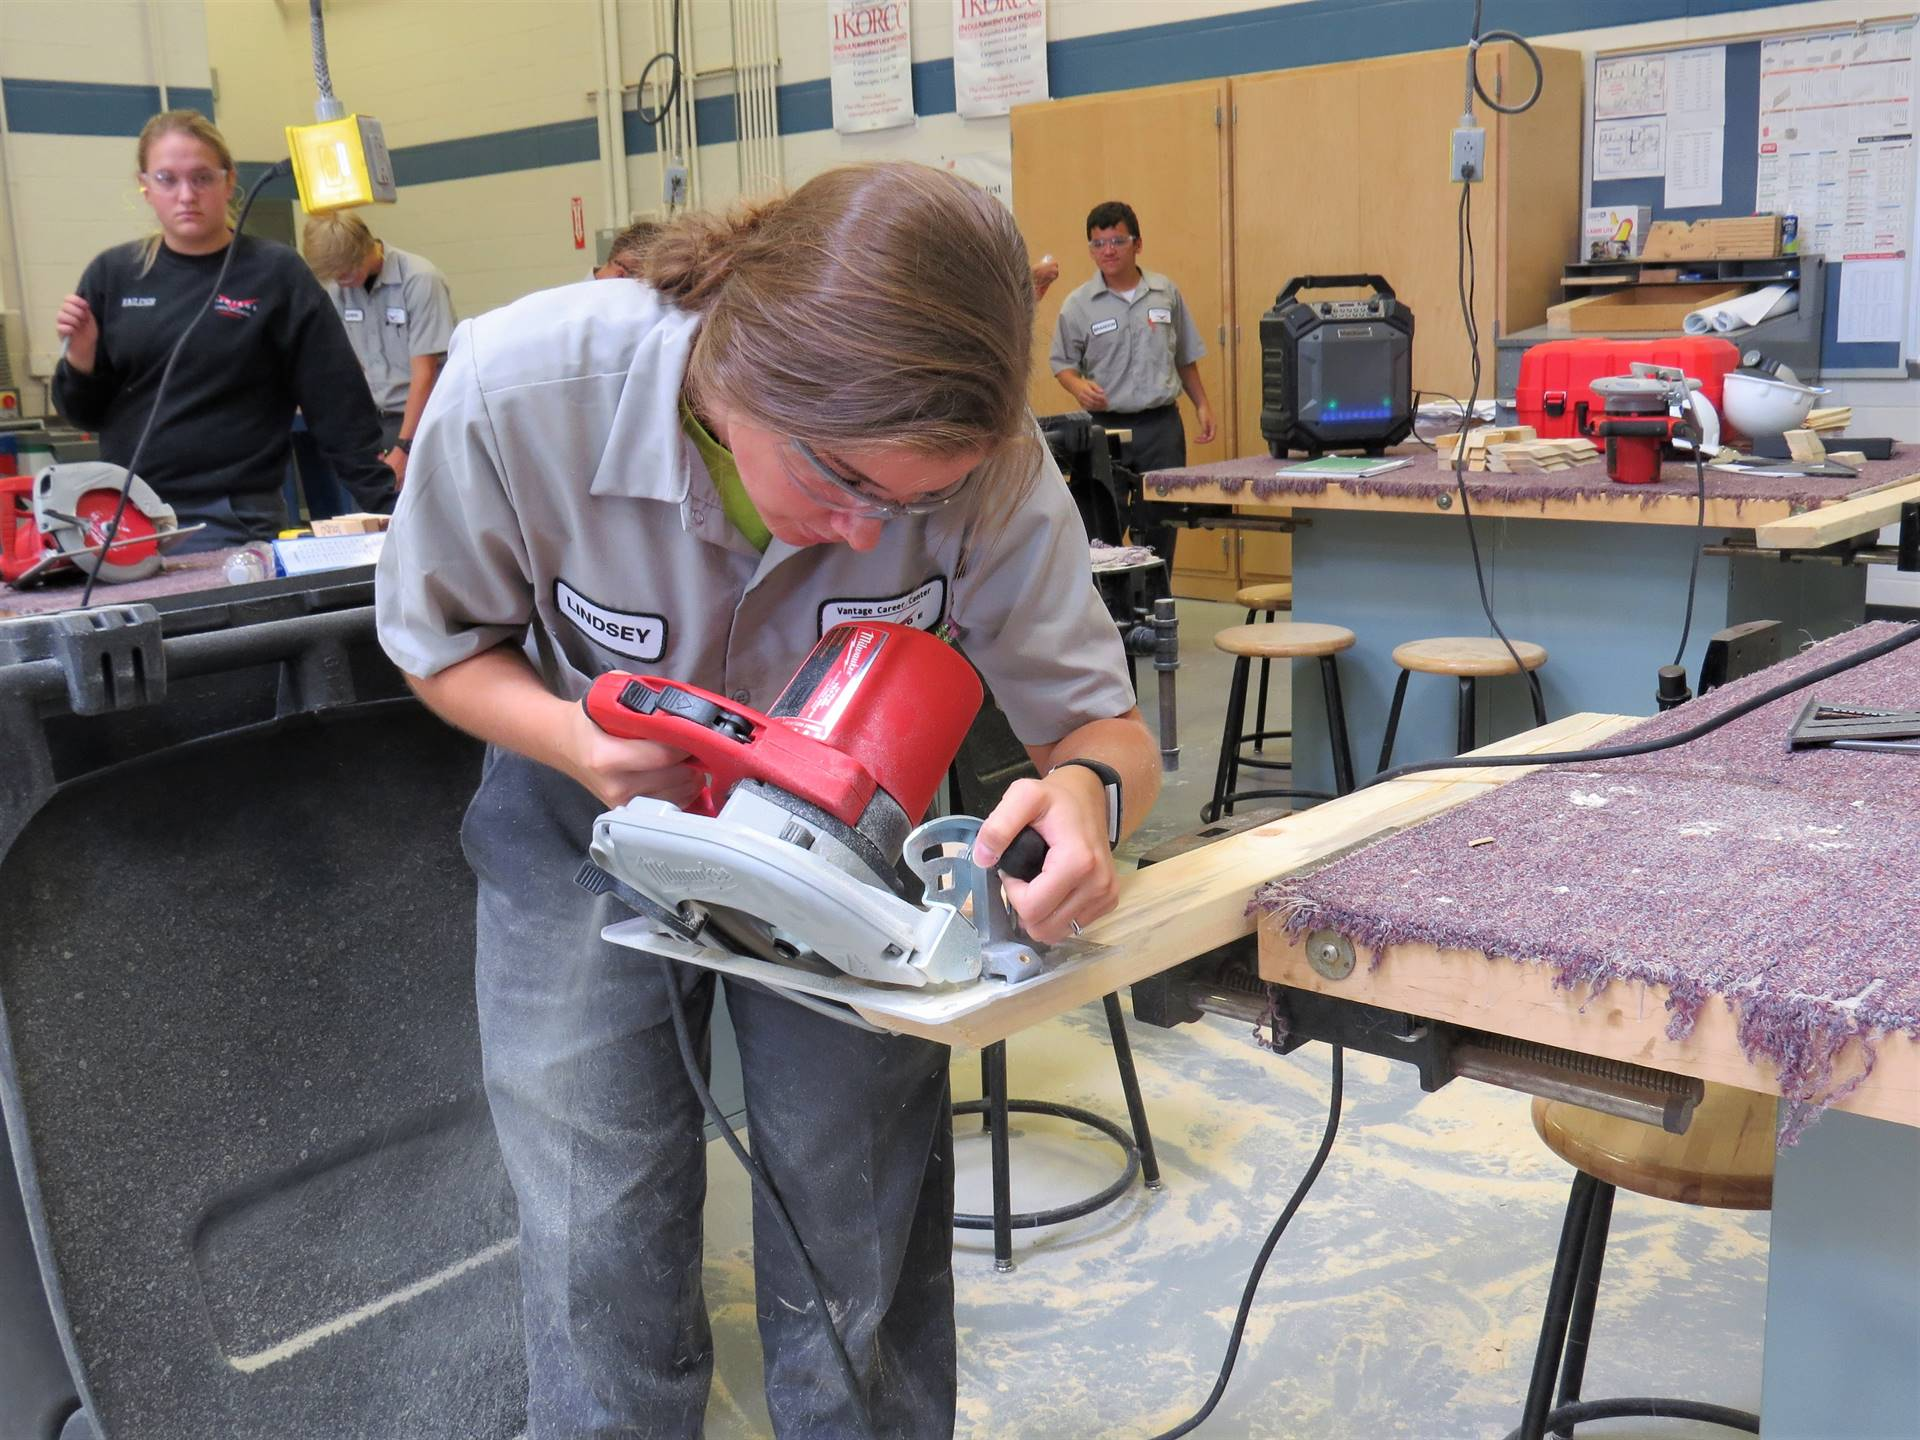 Carpentry students works on project.